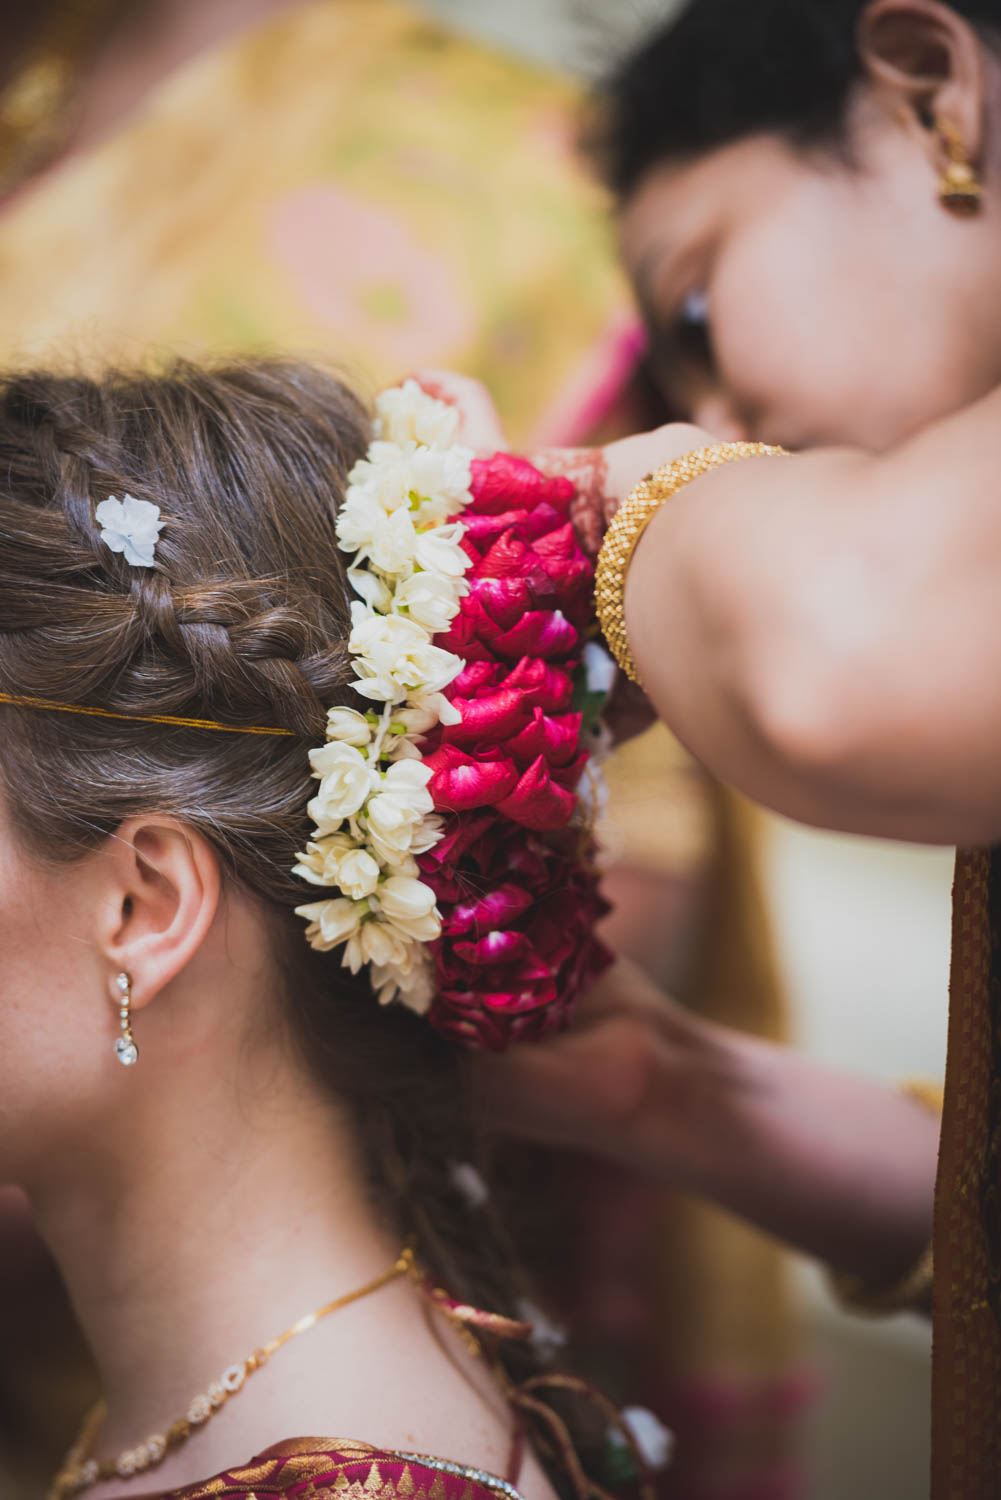 ecaterina-chandu-indian-wedding5.jpg